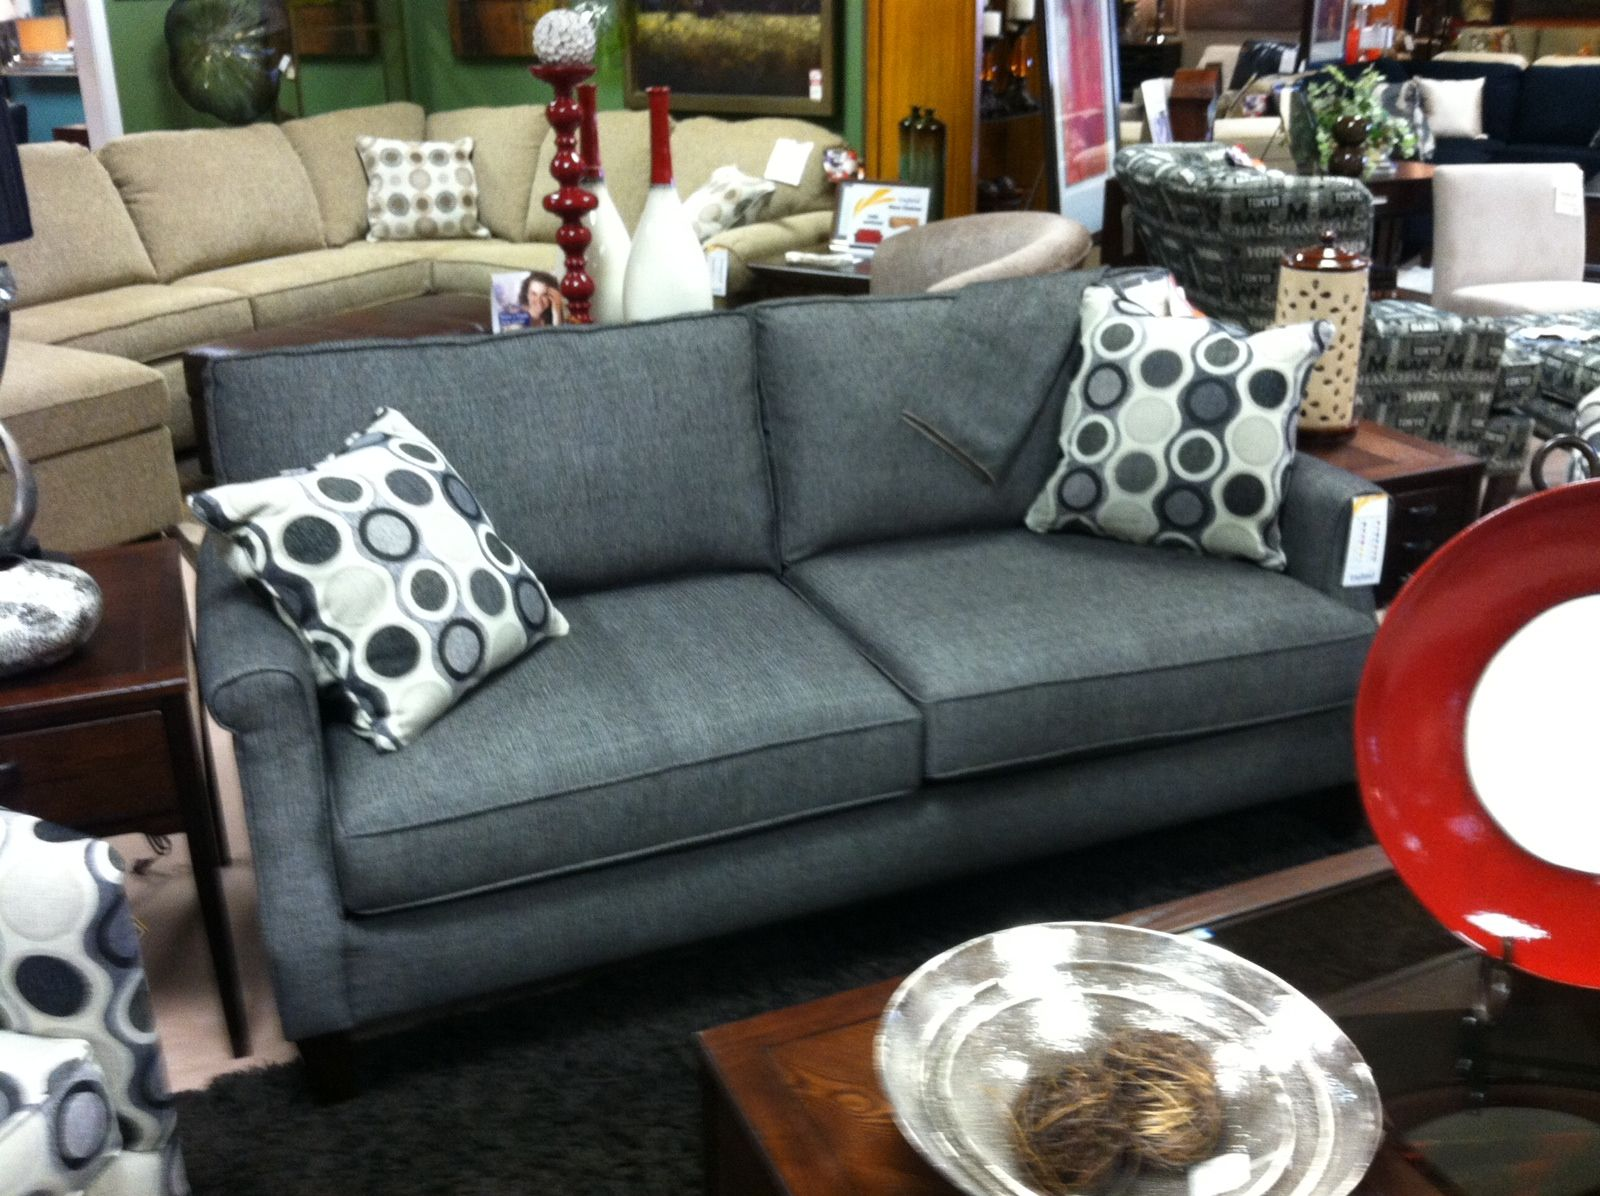 Attractive Option #2 At Deets   No Love Seat, Couch 76x38   England Furniture